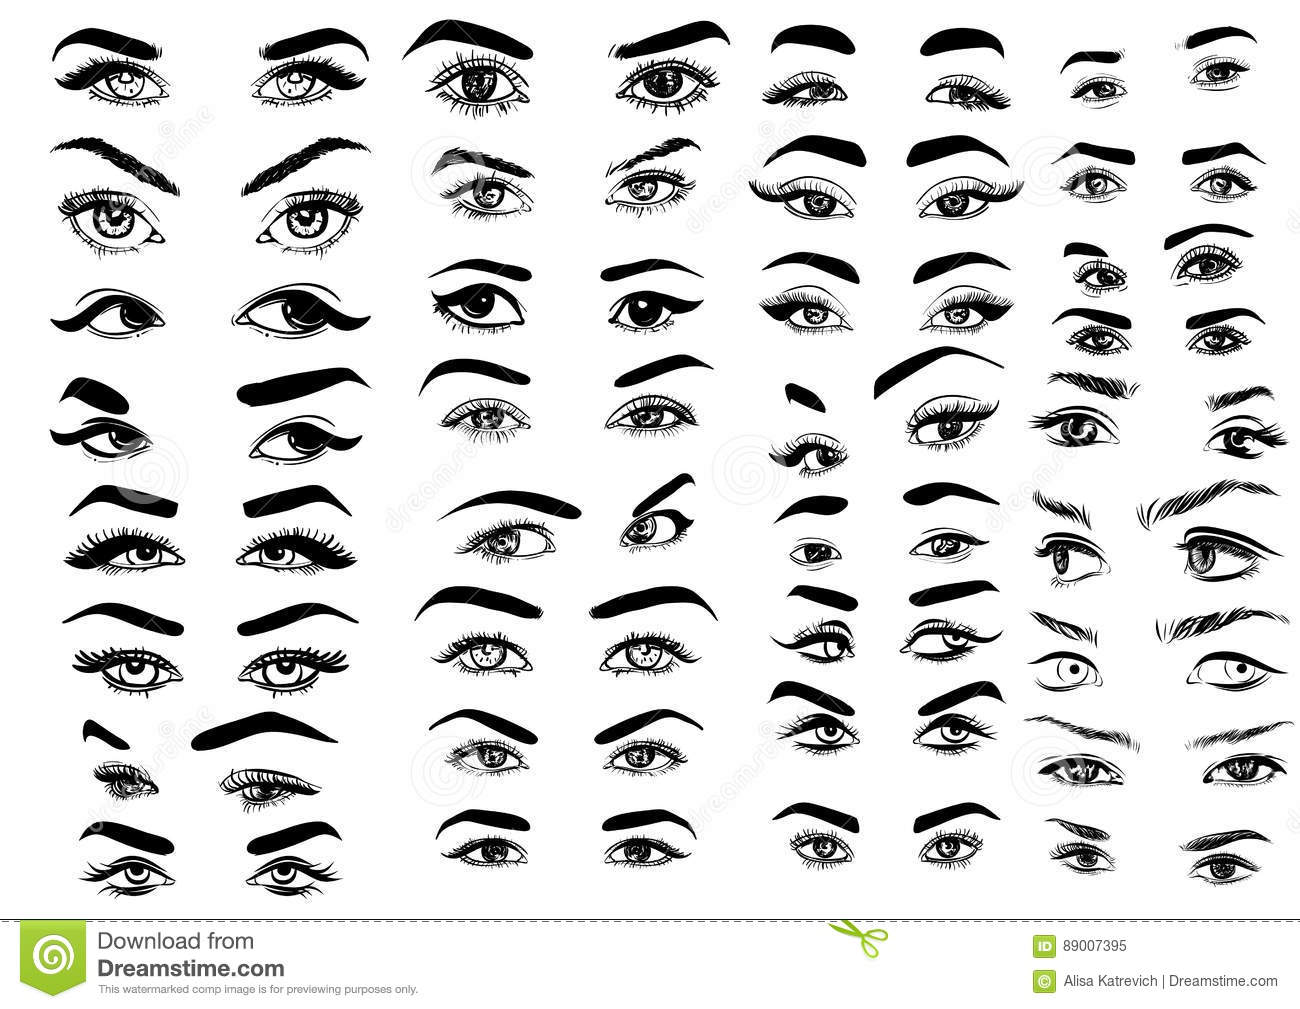 Female woman eyes and brows image collection set fashion girl eyes design vector illustration